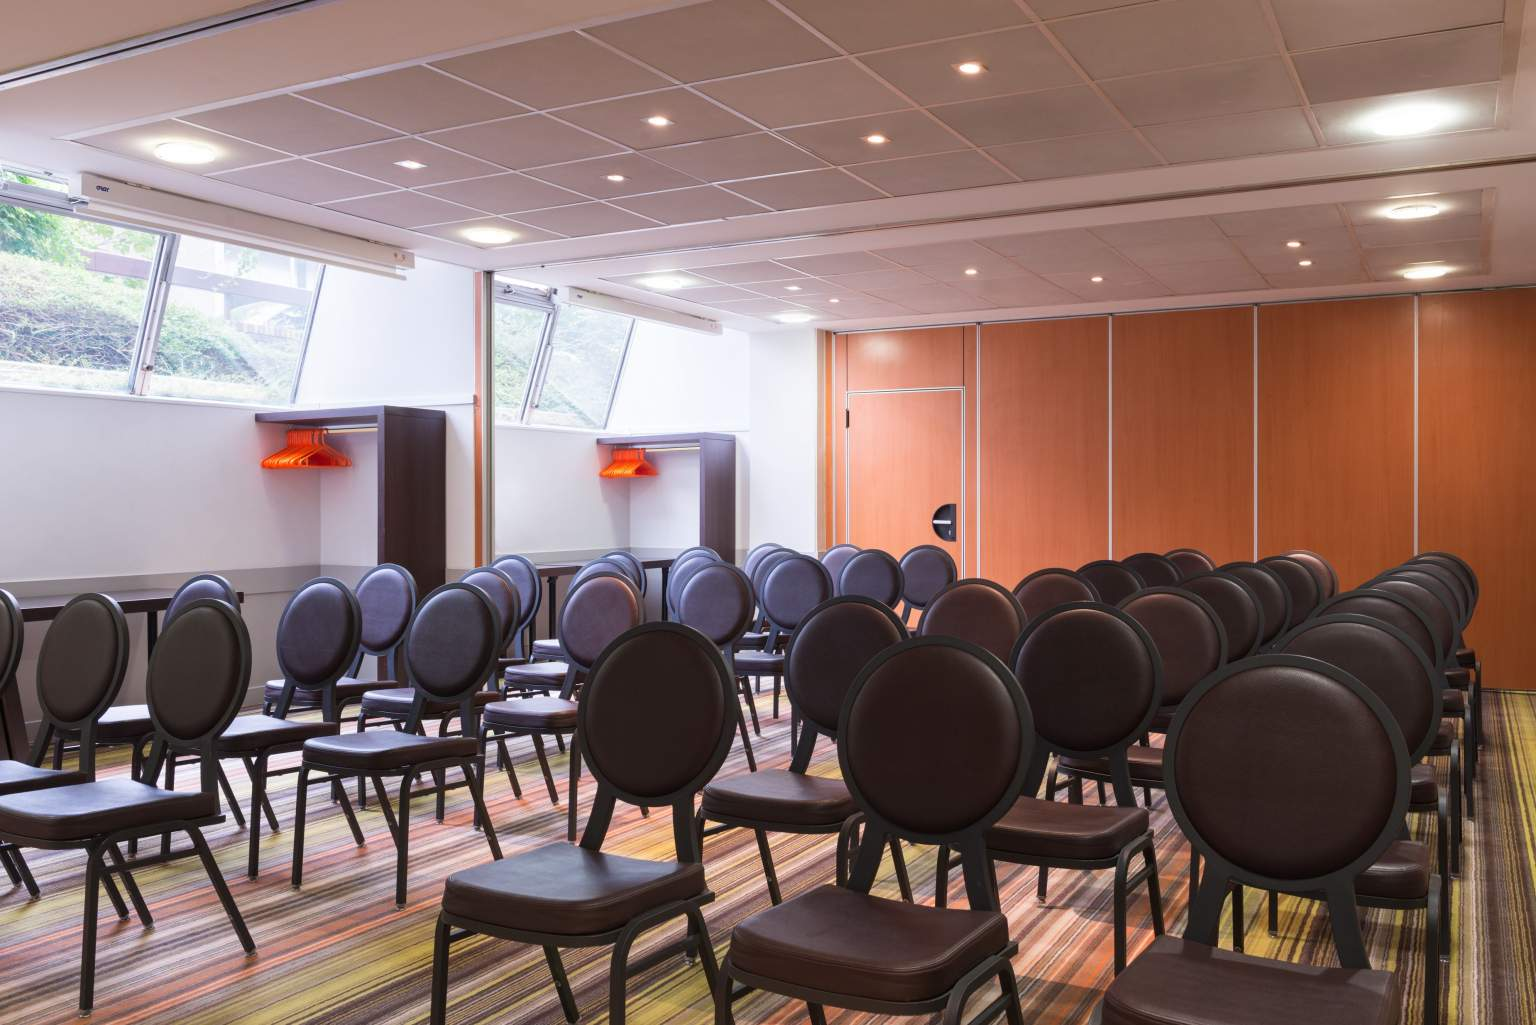 a seminar room with theatre style seating in Boulogne Billancourt